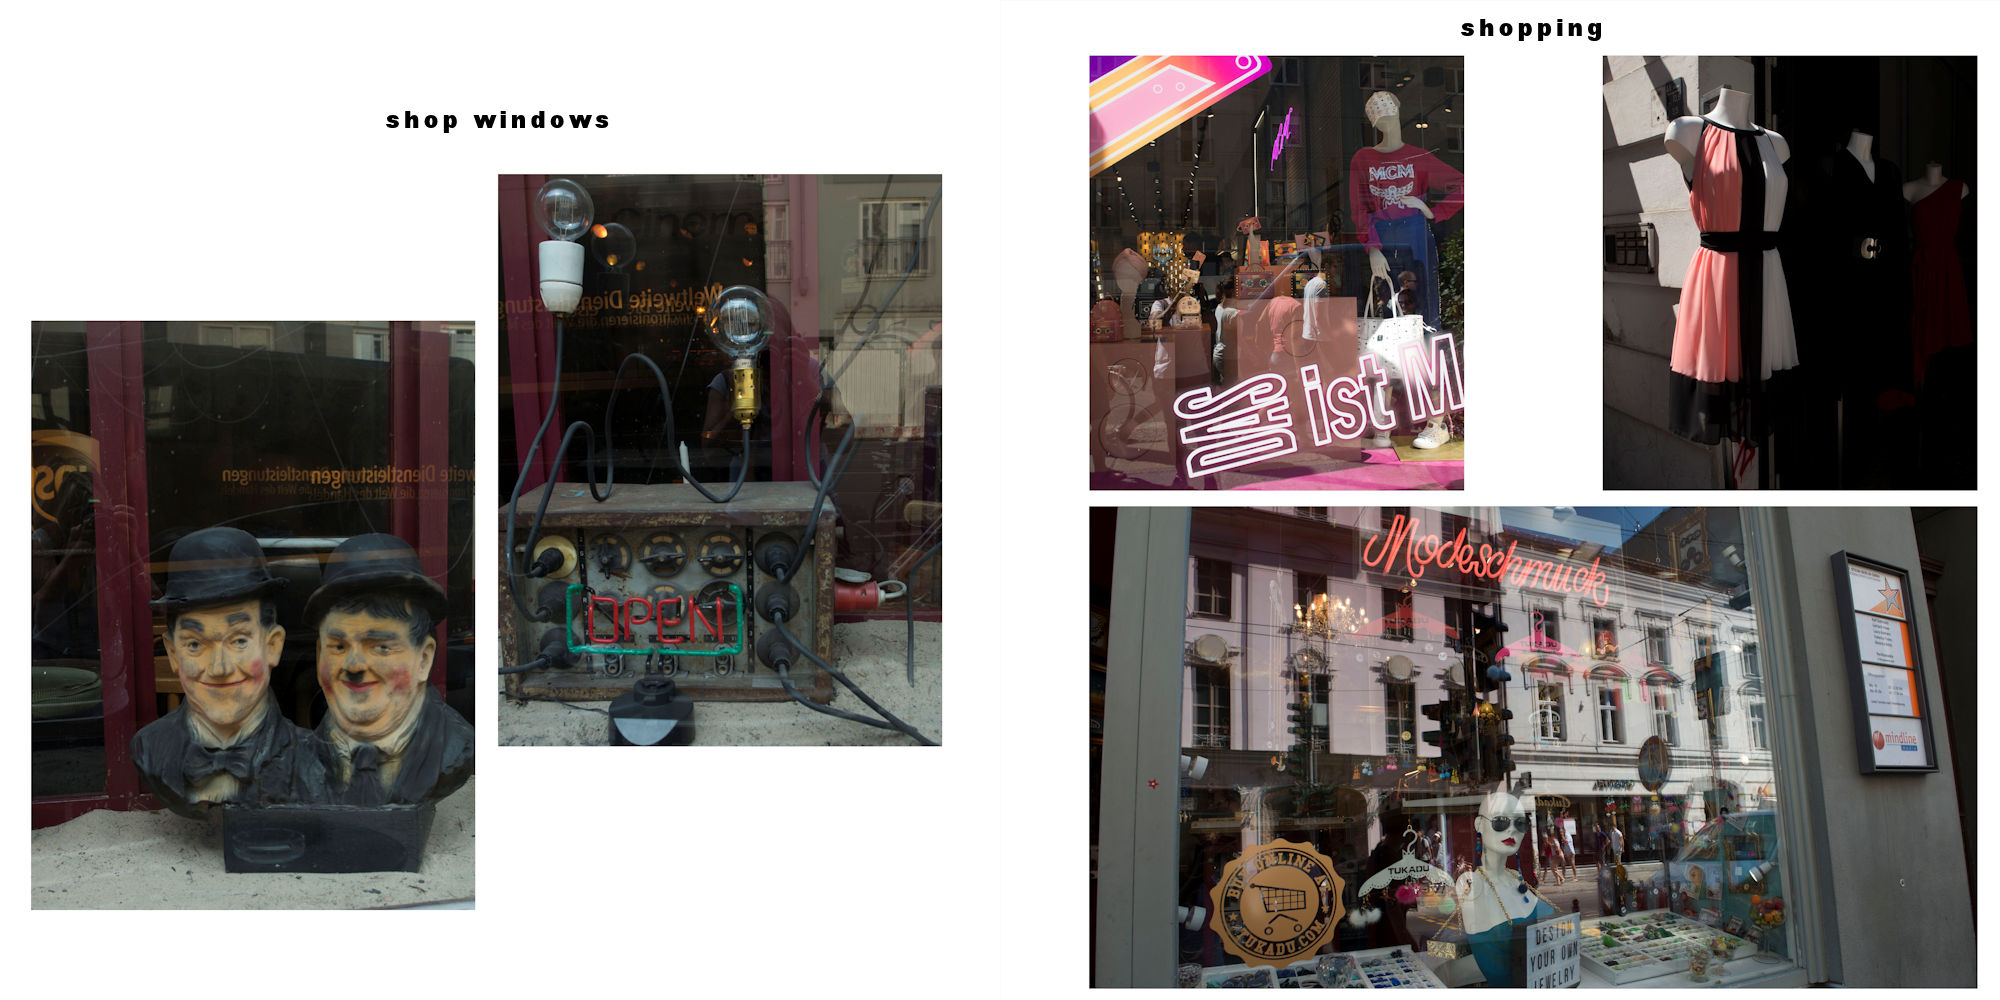 Berlin-2018 Album - Pages 10-11: Shop windows - From fad to fashion